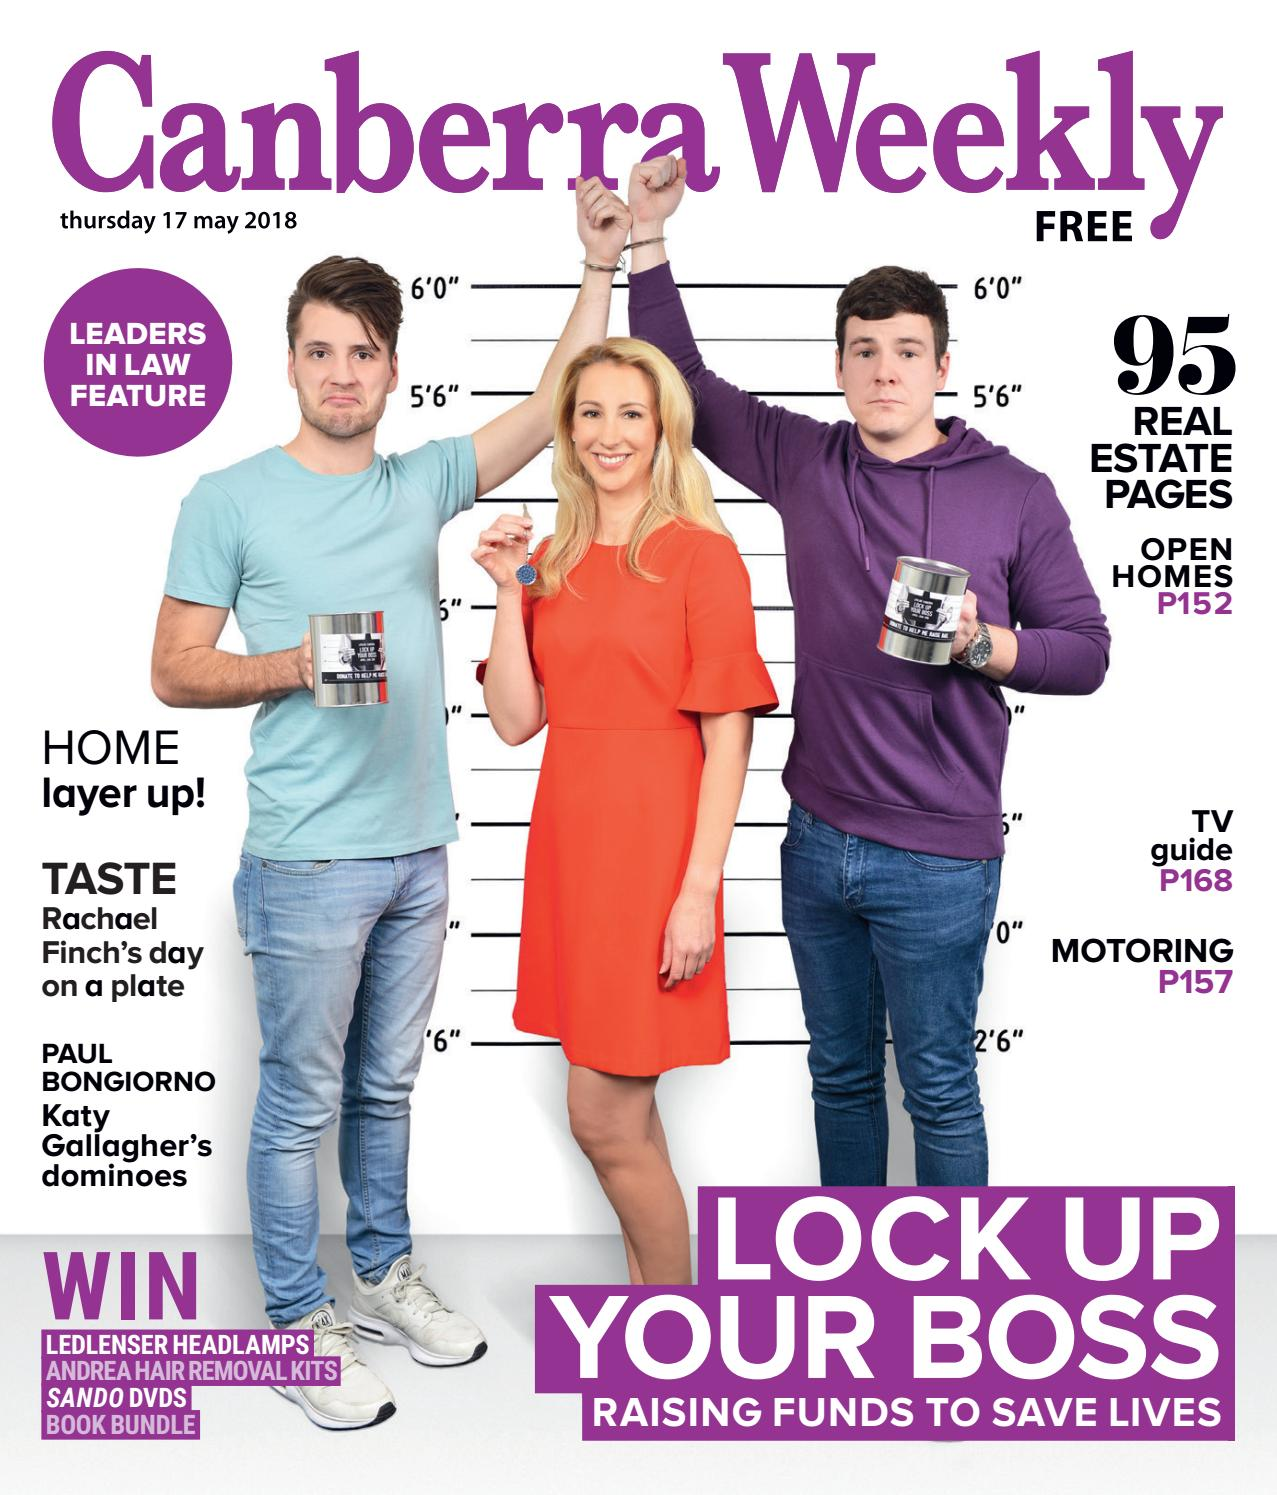 a place to call home complete series supernatural dvd seasons 1 12 set pristine sales 17 May 2018 by Canberra Weekly Magazine - issuu